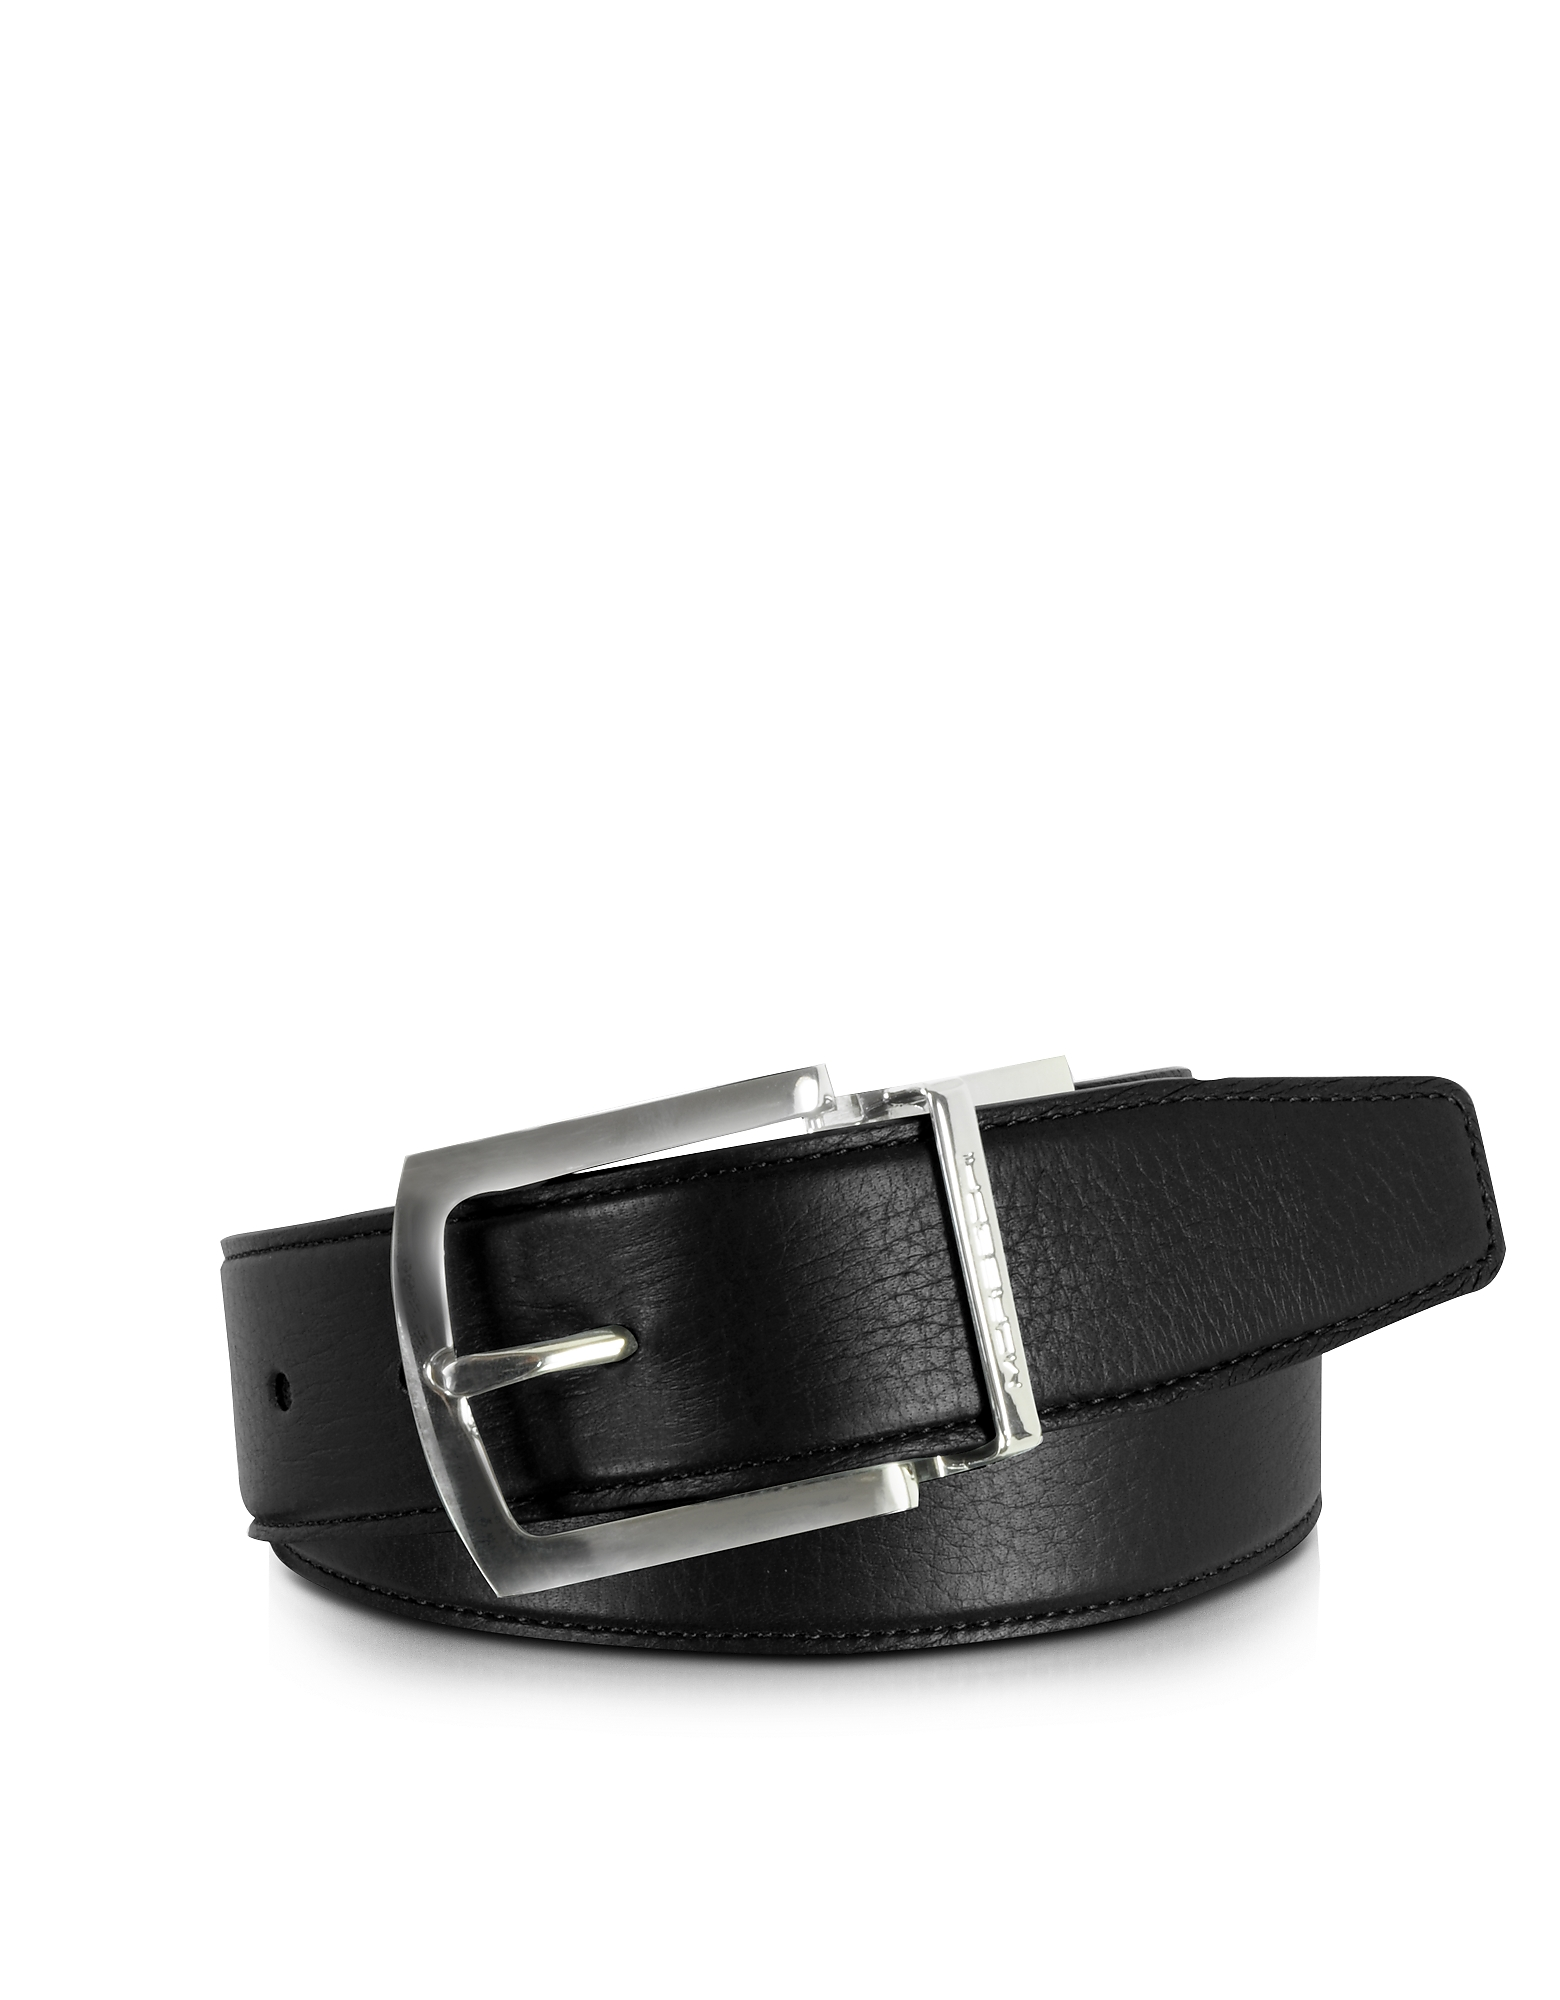 Moreschi Men's Belts, Orlando Black/Brown Reversible Leather Belt